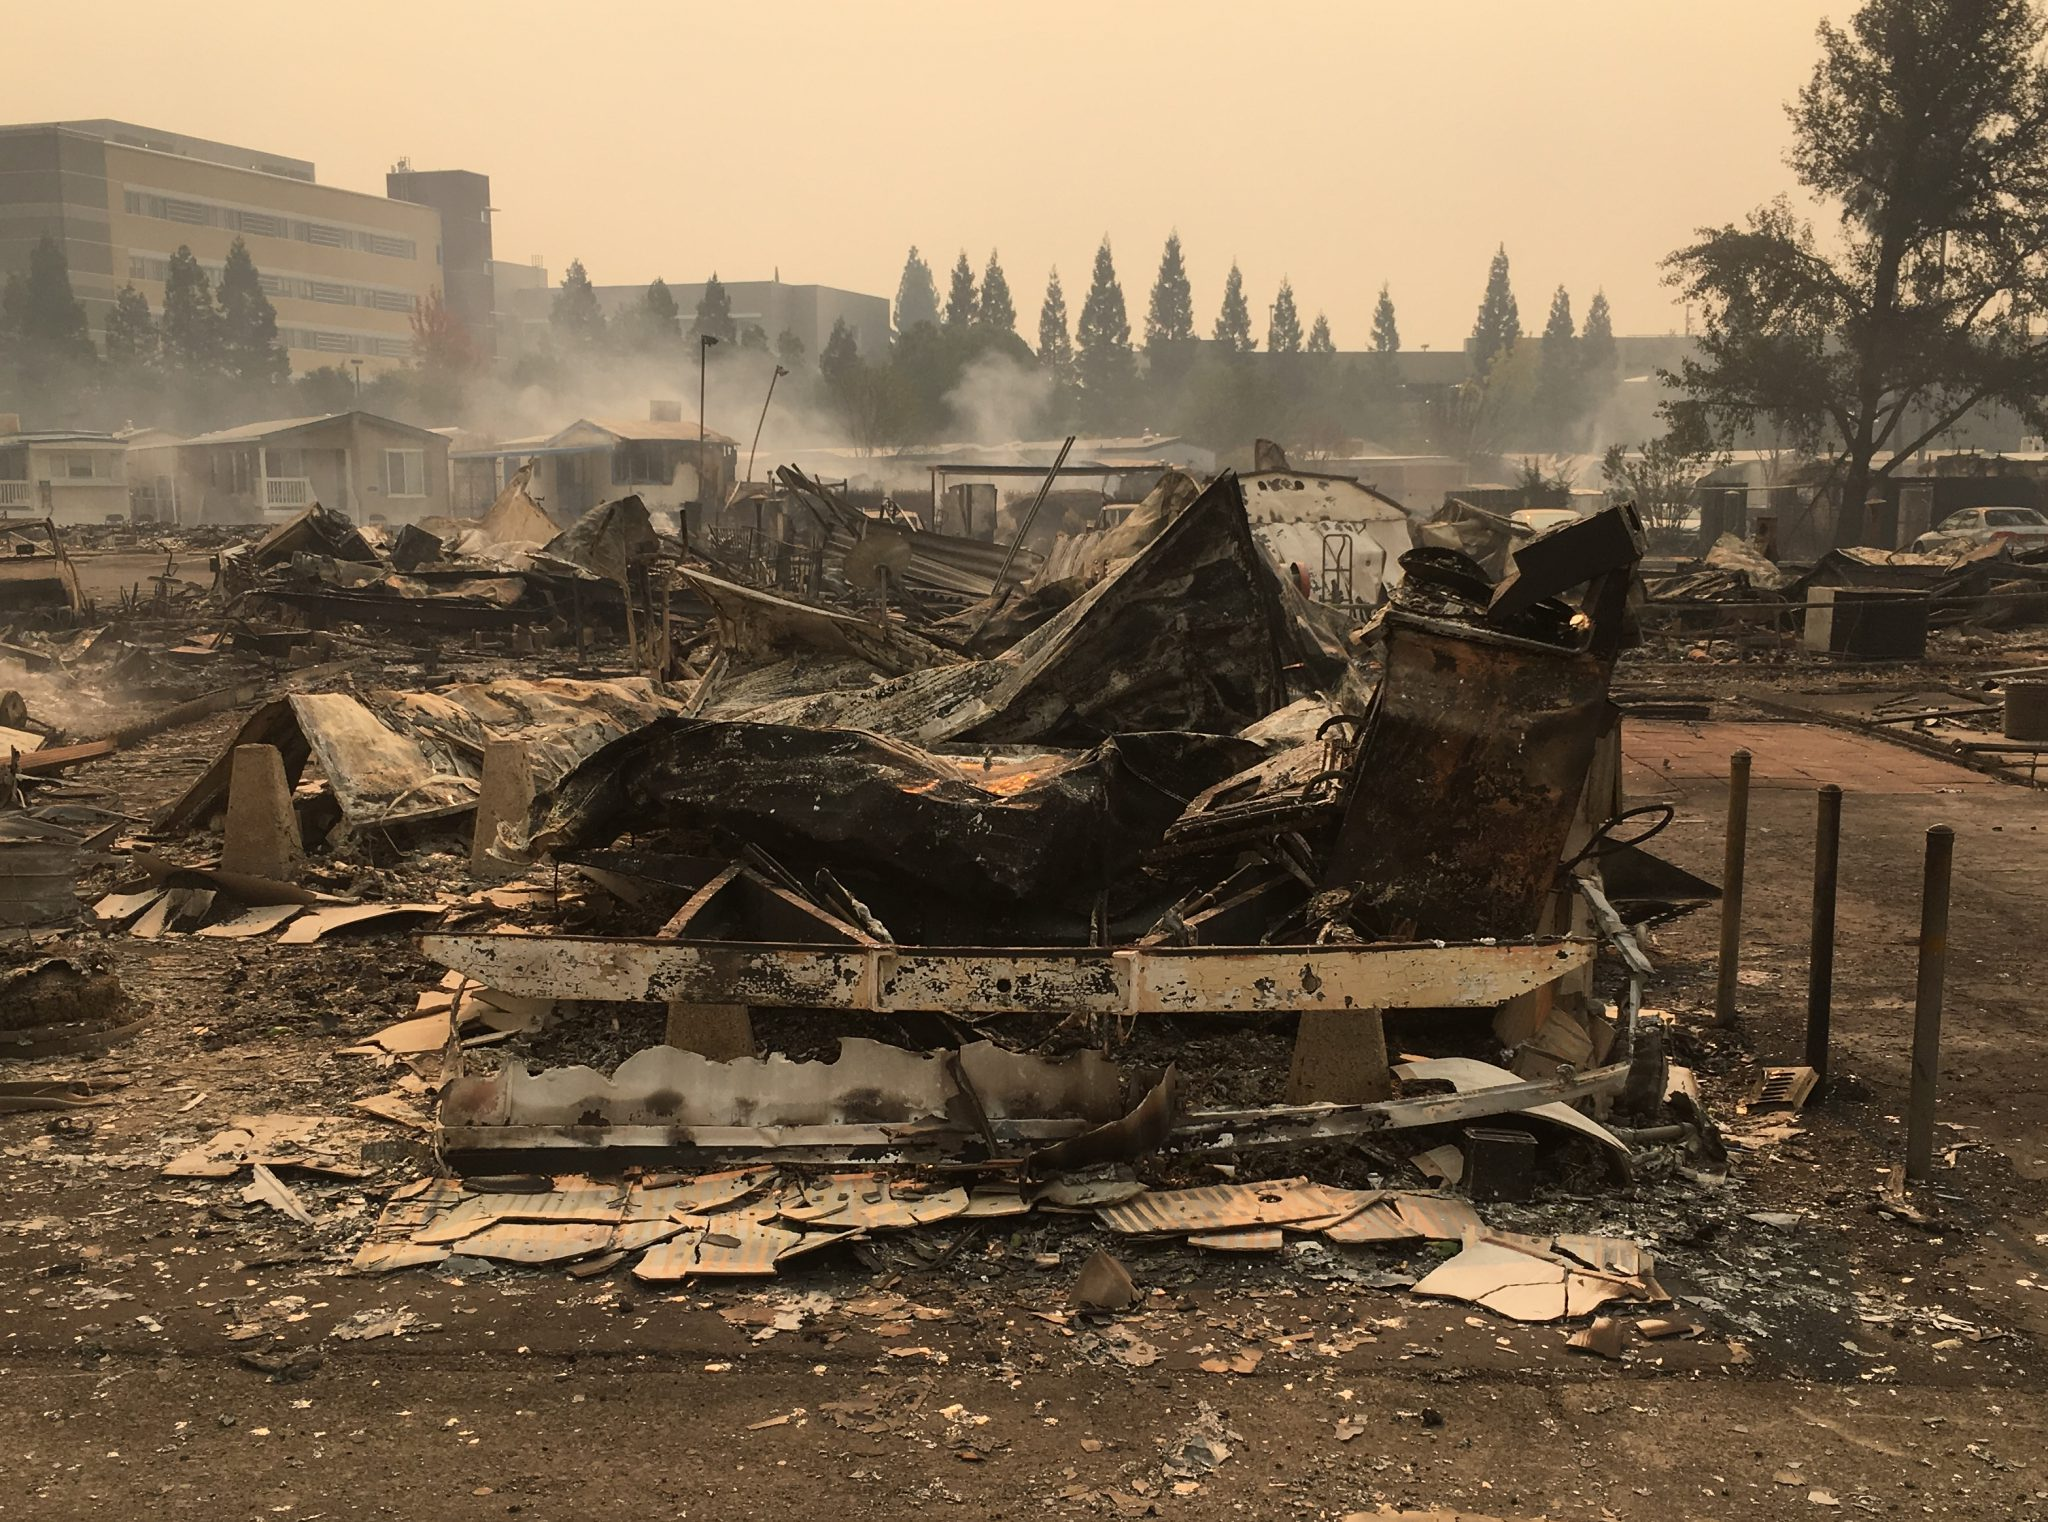 The remains of a mobile home in Santa Rosa smolder during the Tubbs Fire.